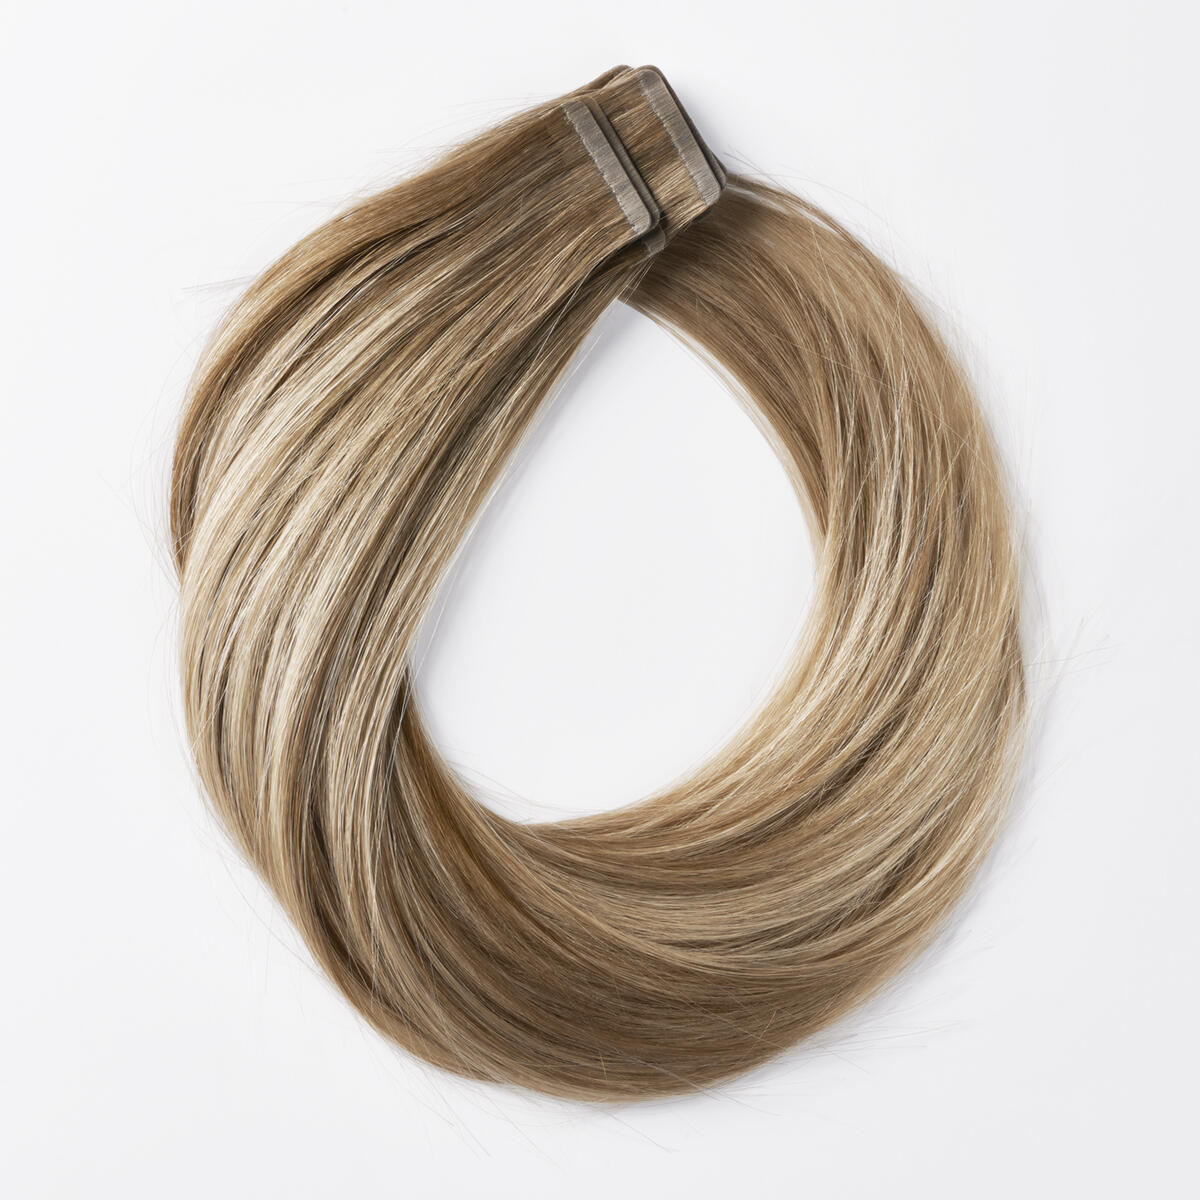 Sleek Tape Extension B5.1/7.3 Brown Ash Blonde Balayage 45 cm